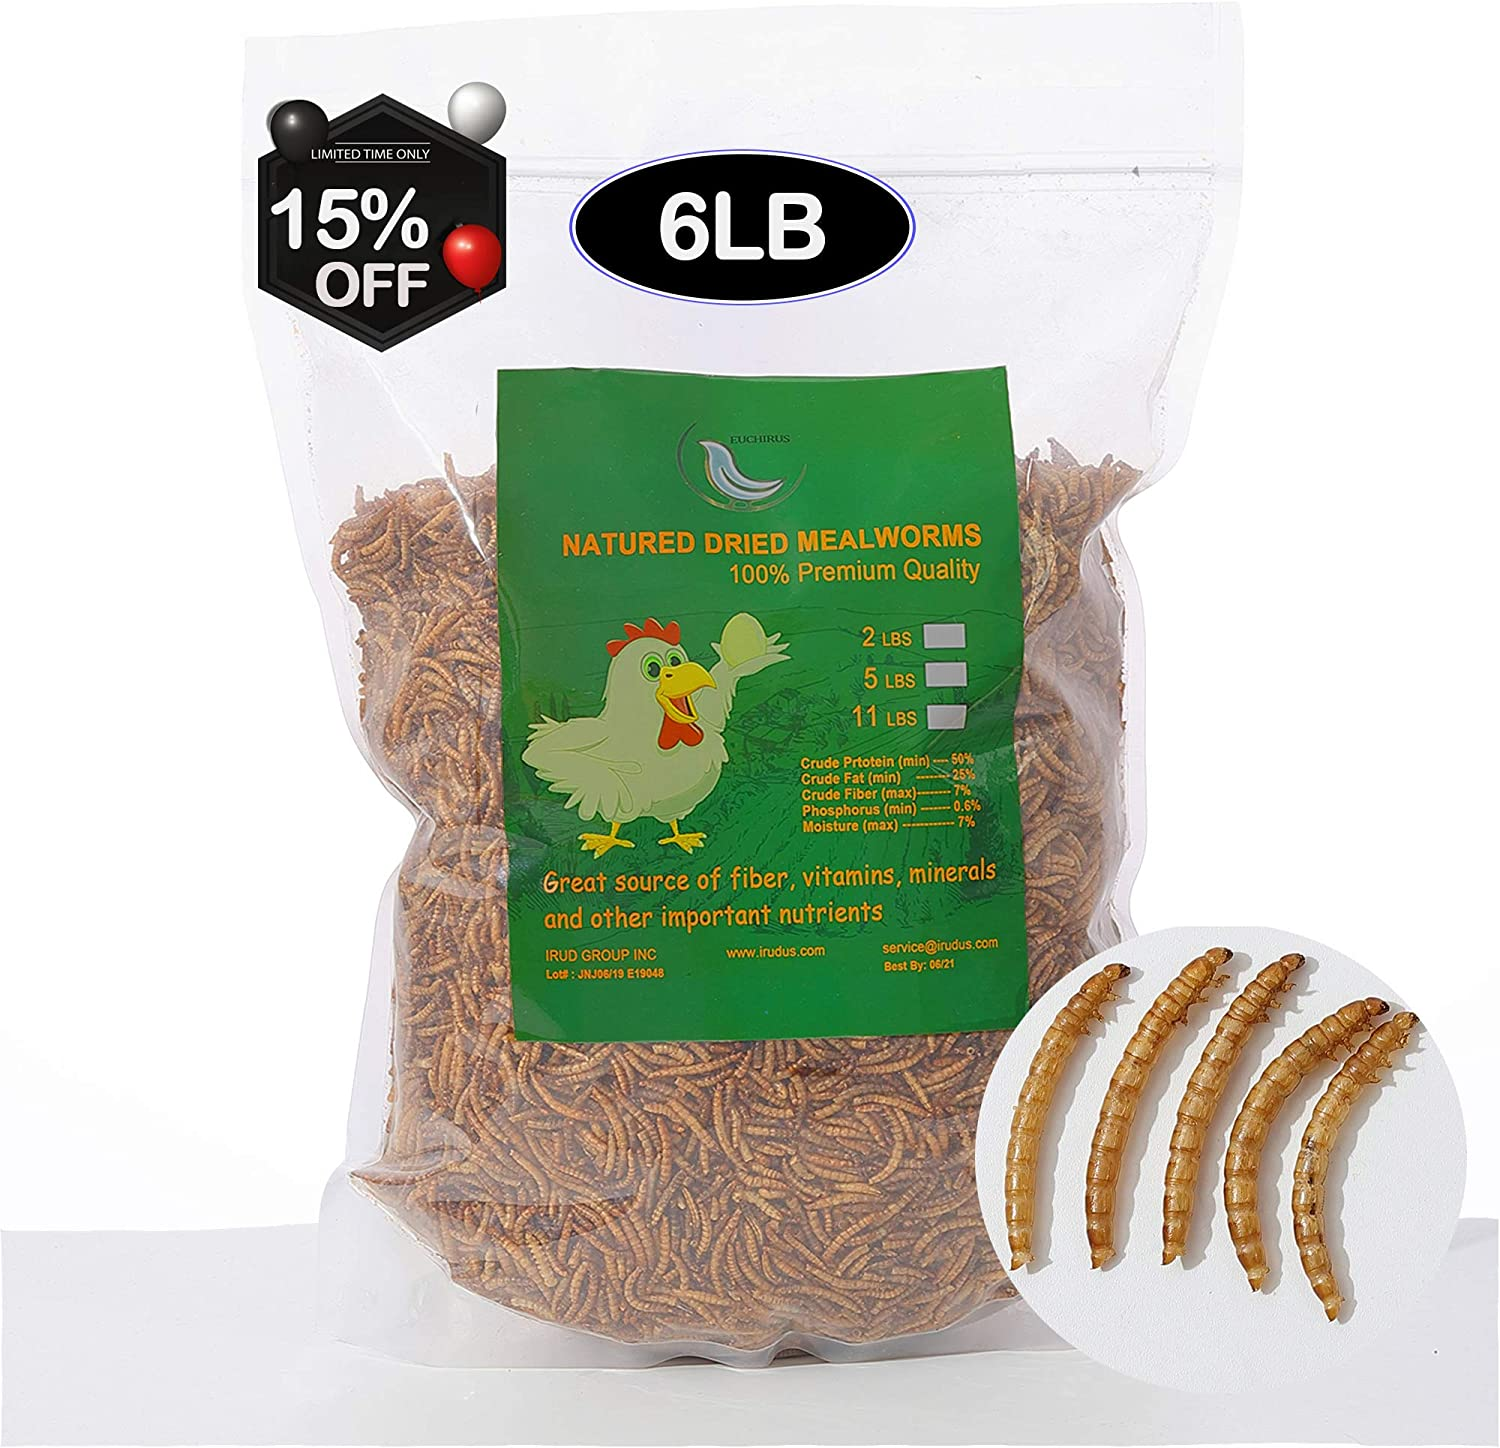 Euchirus 6LBS Non-GMO Dried Mealworms for Wild Bird Chicken Fish,High-Protein,Large Meal Worms.